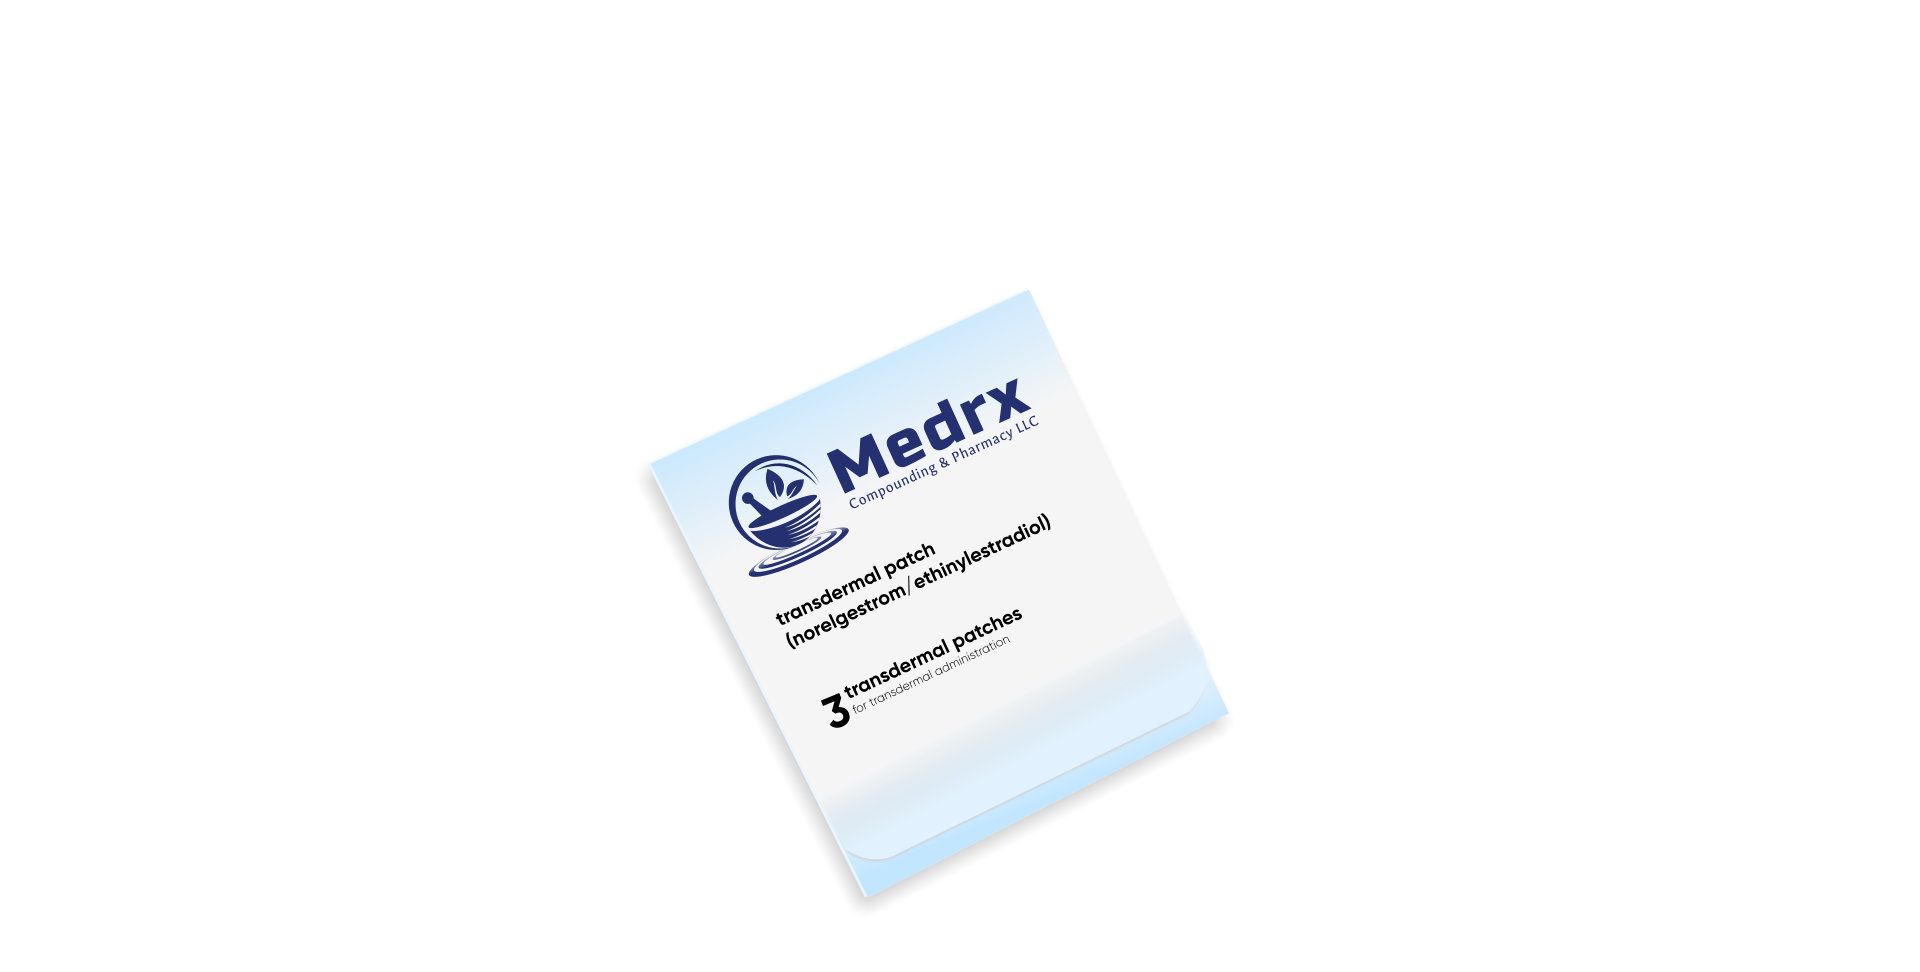 Medrx products